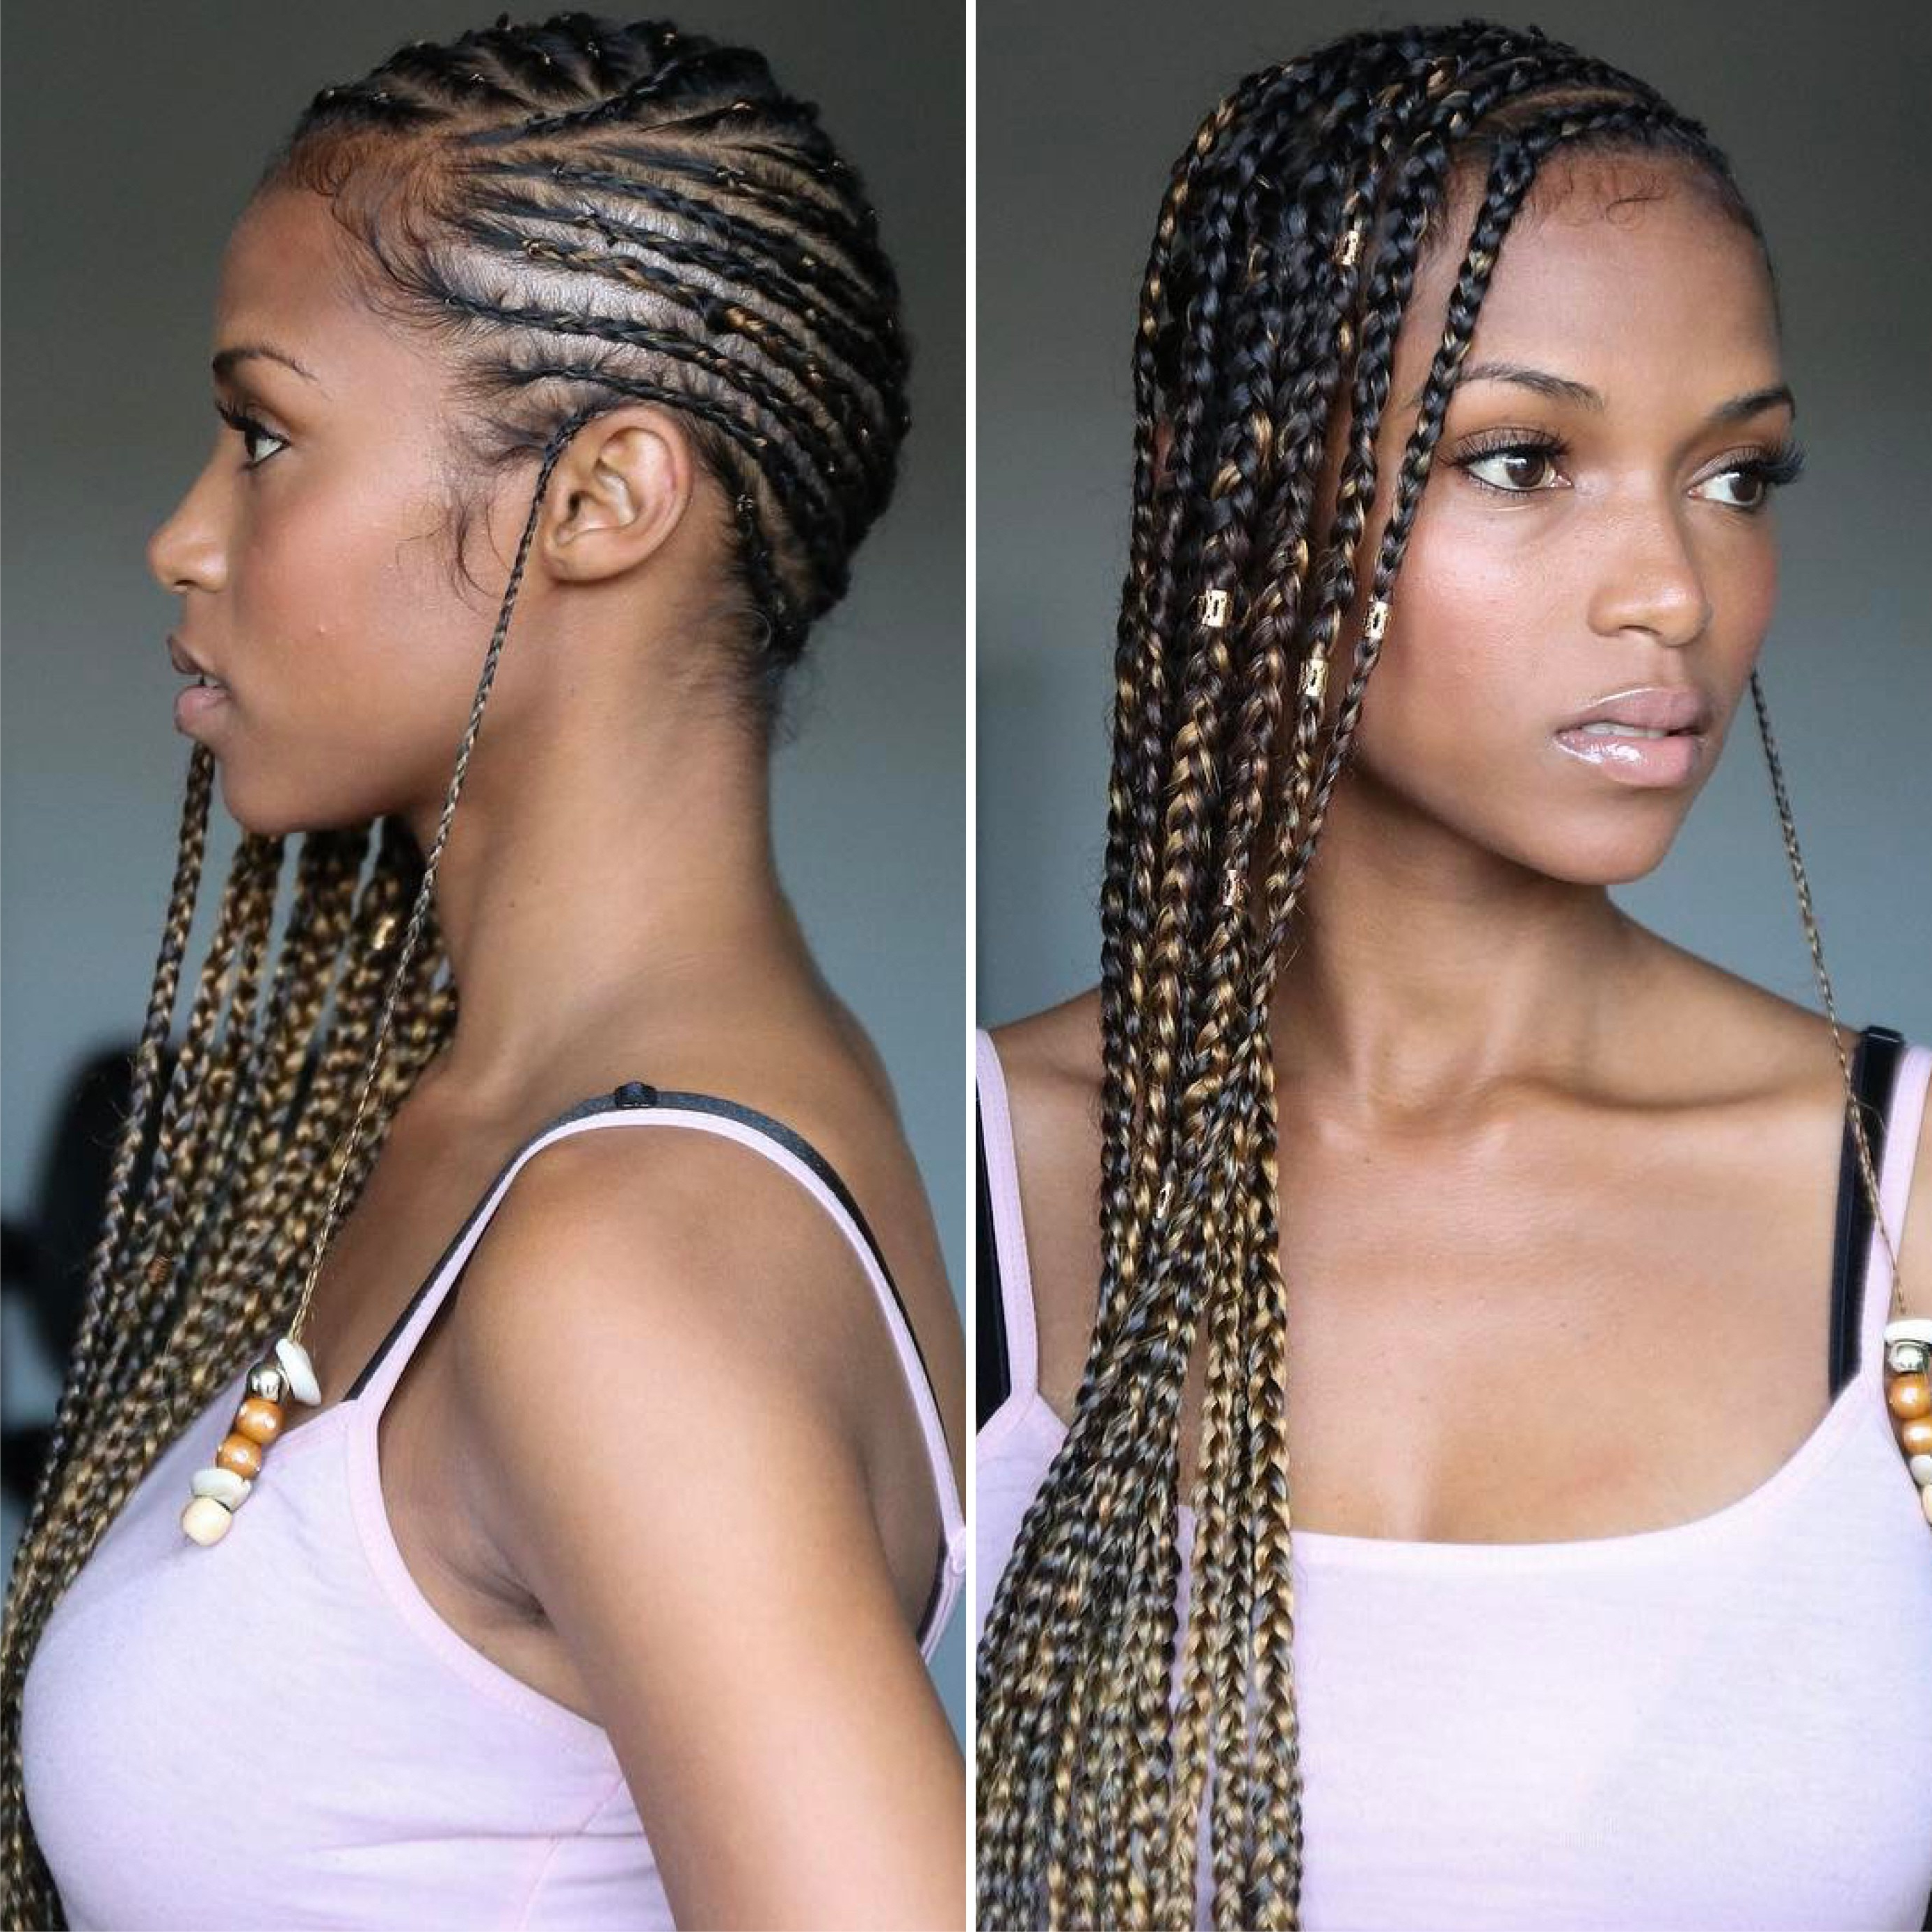 12 Gorgeous Braided Hairstyles With Beads From Instagram Inside Most Up To Date Golden Blonde Tiny Braid Hairstyles (Gallery 12 of 20)